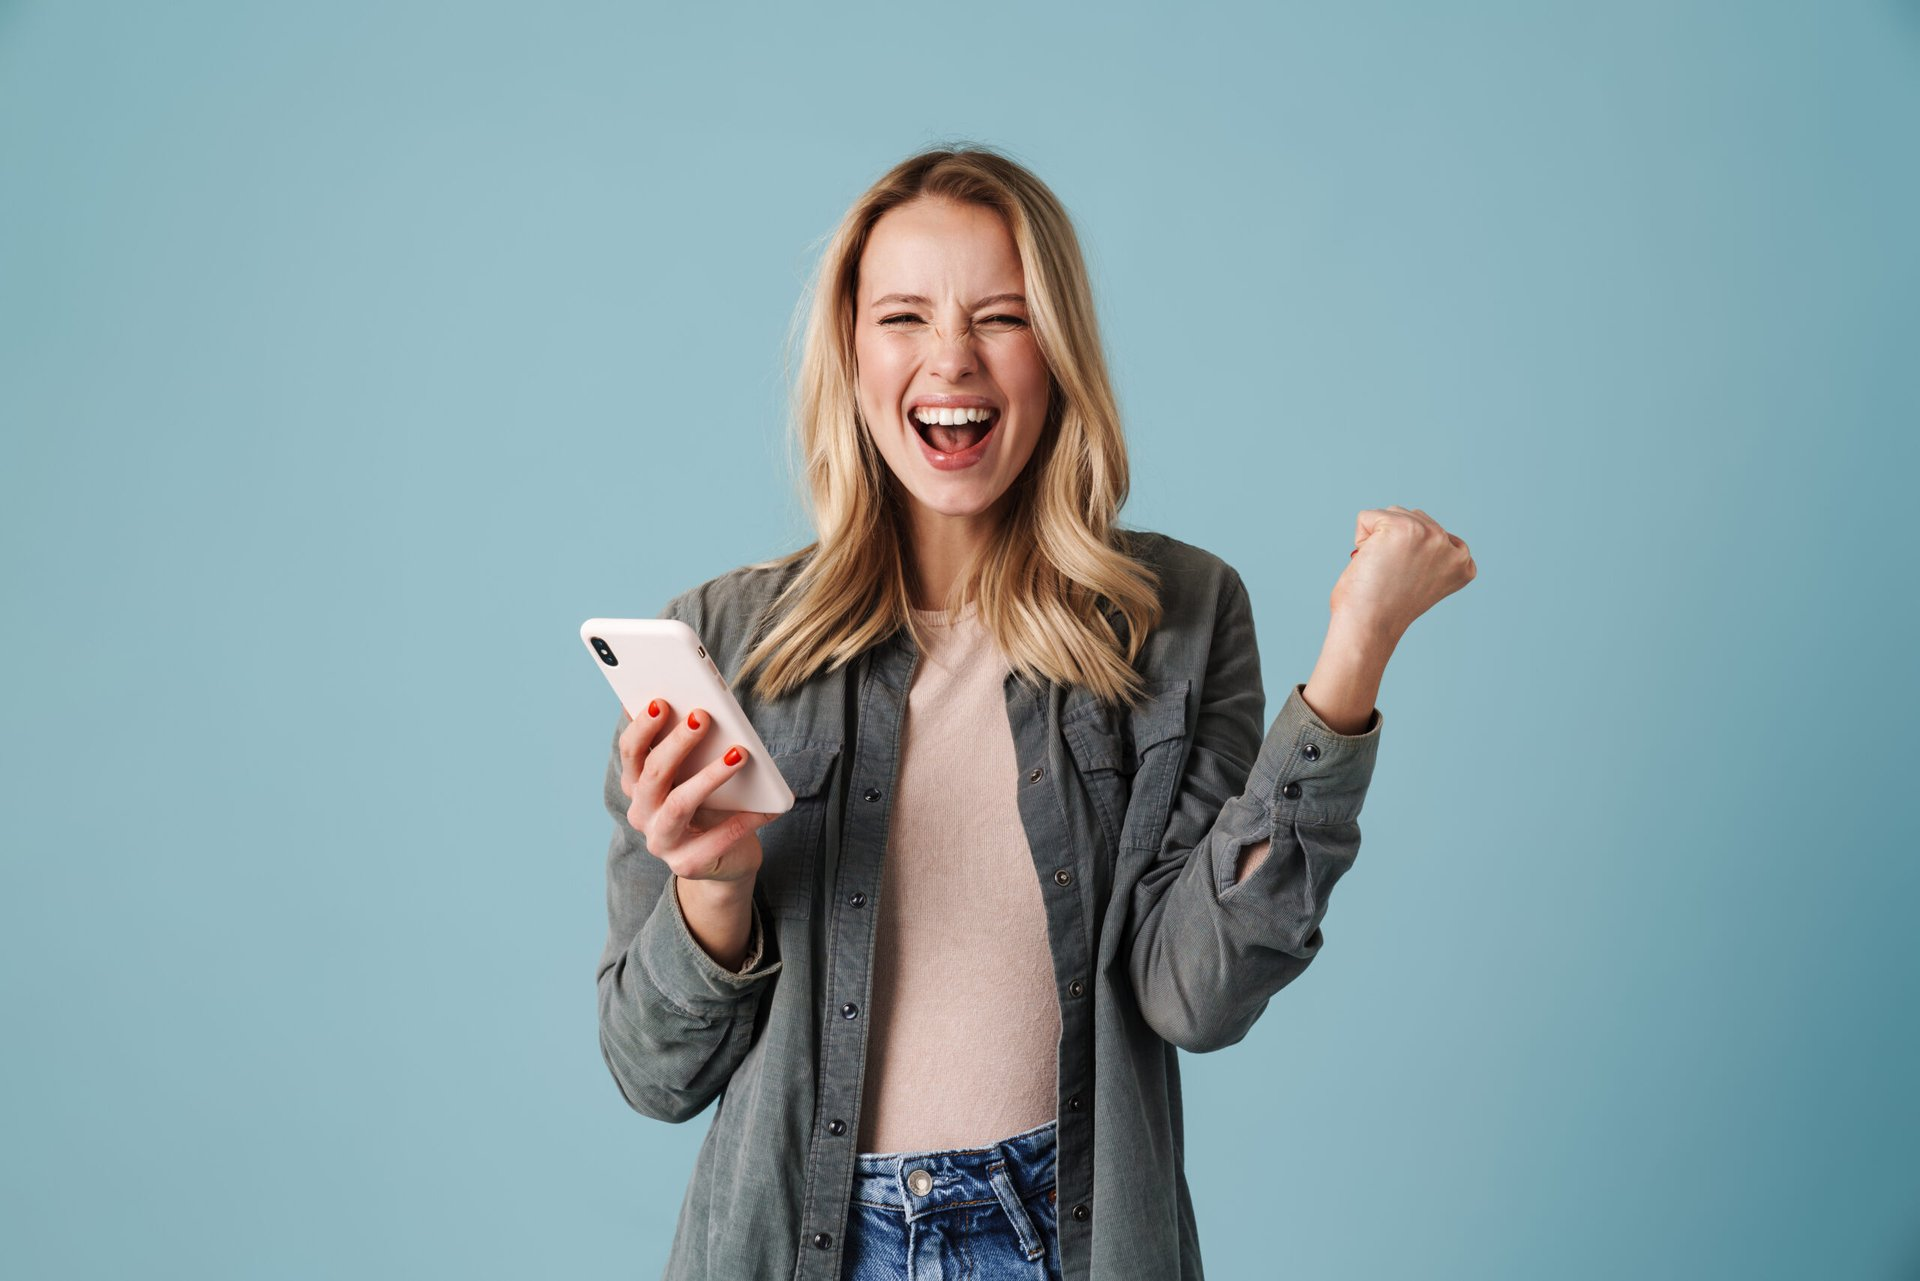 Woman excited with new phone